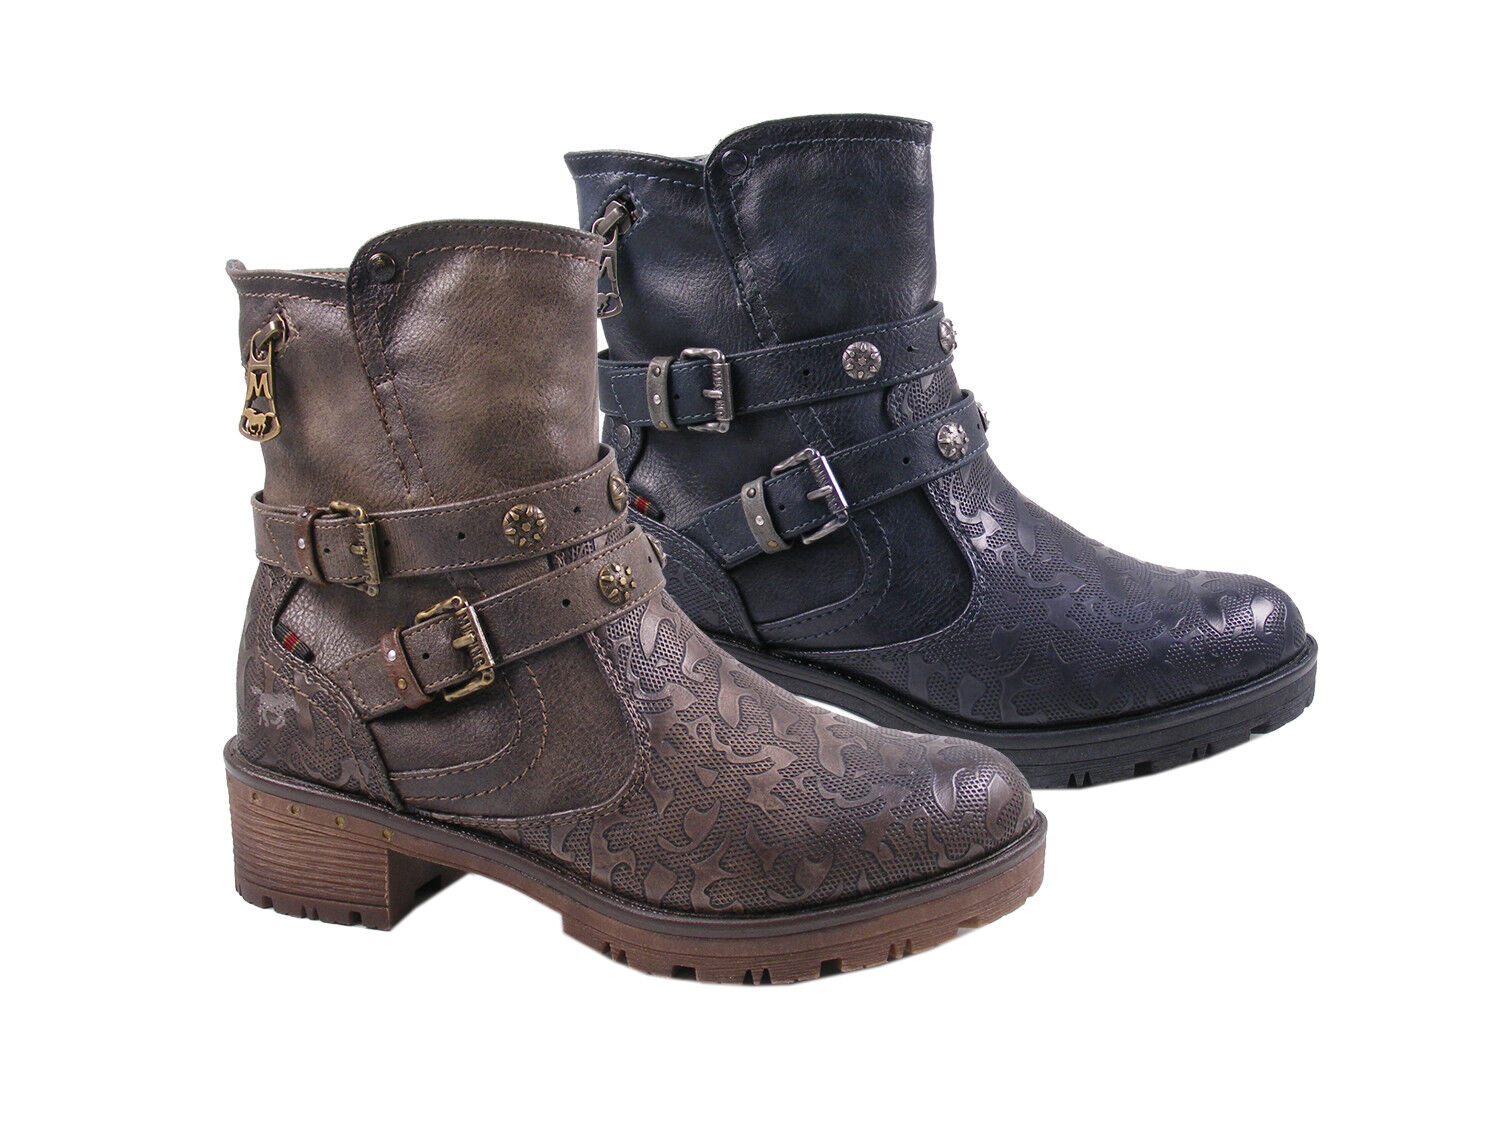 Mustang 1284-606 chaussures femmes Bottines bottes